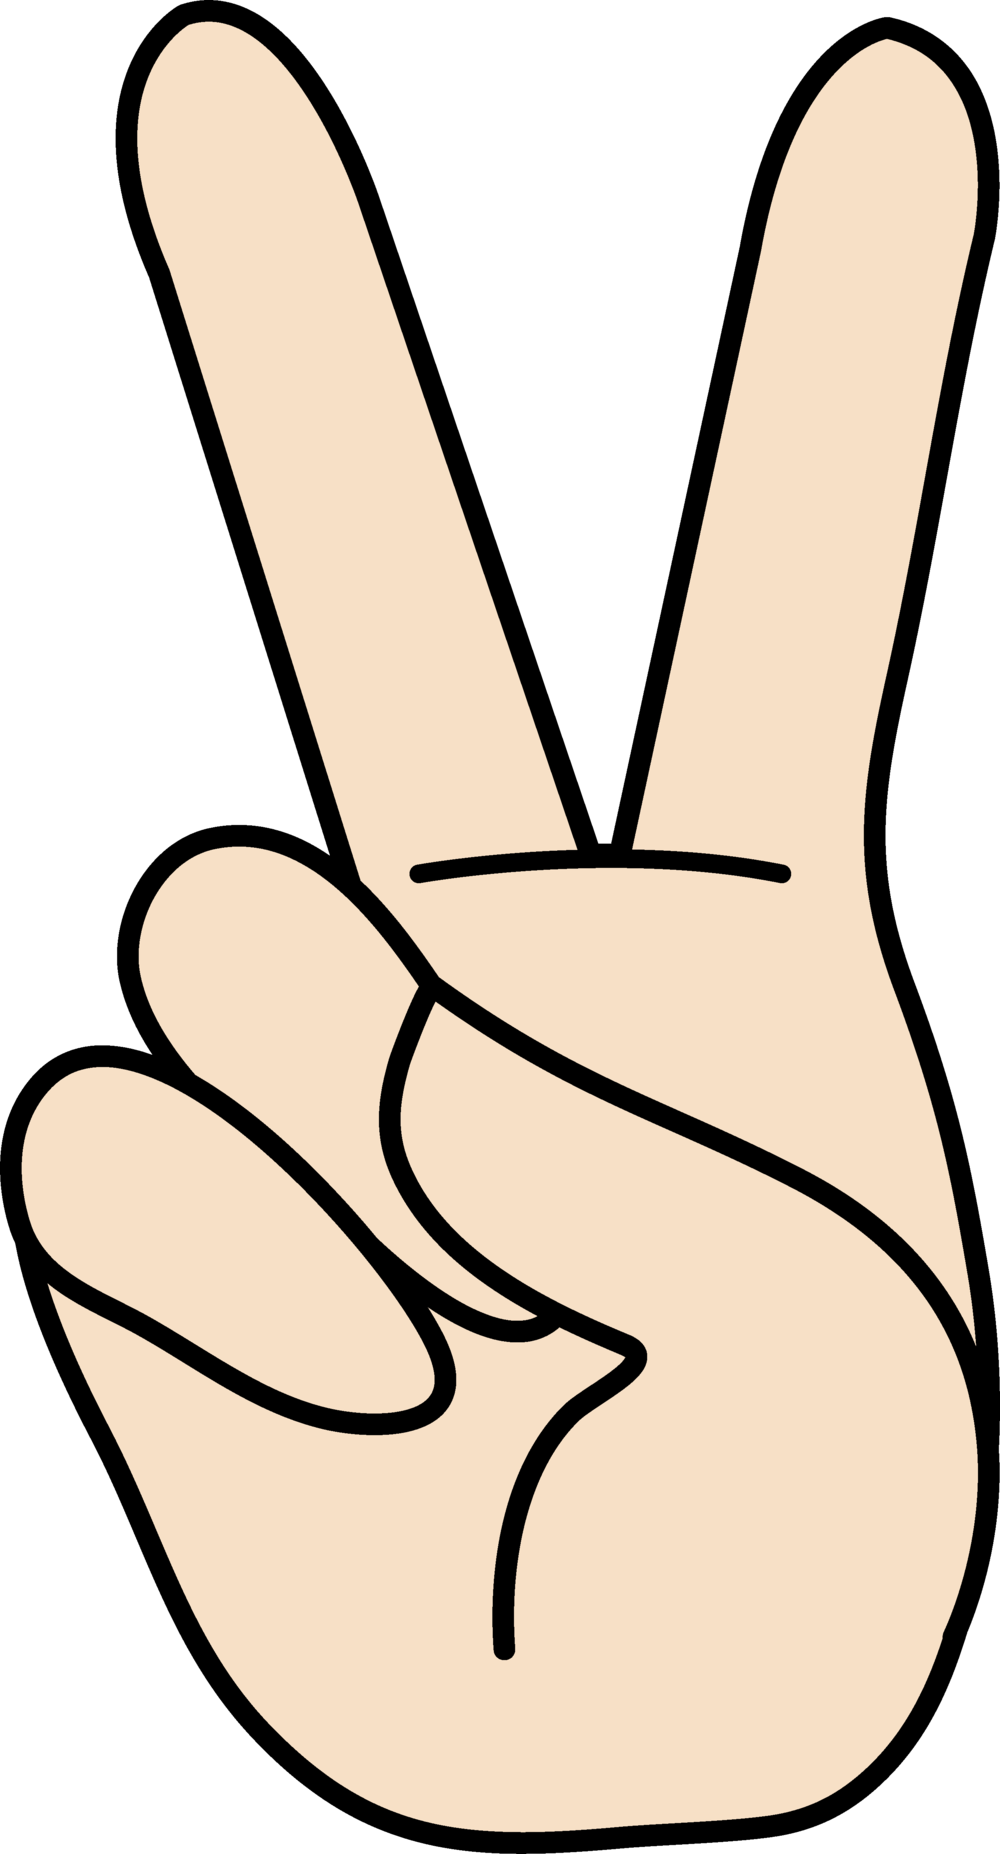 peace_hand_sign.png